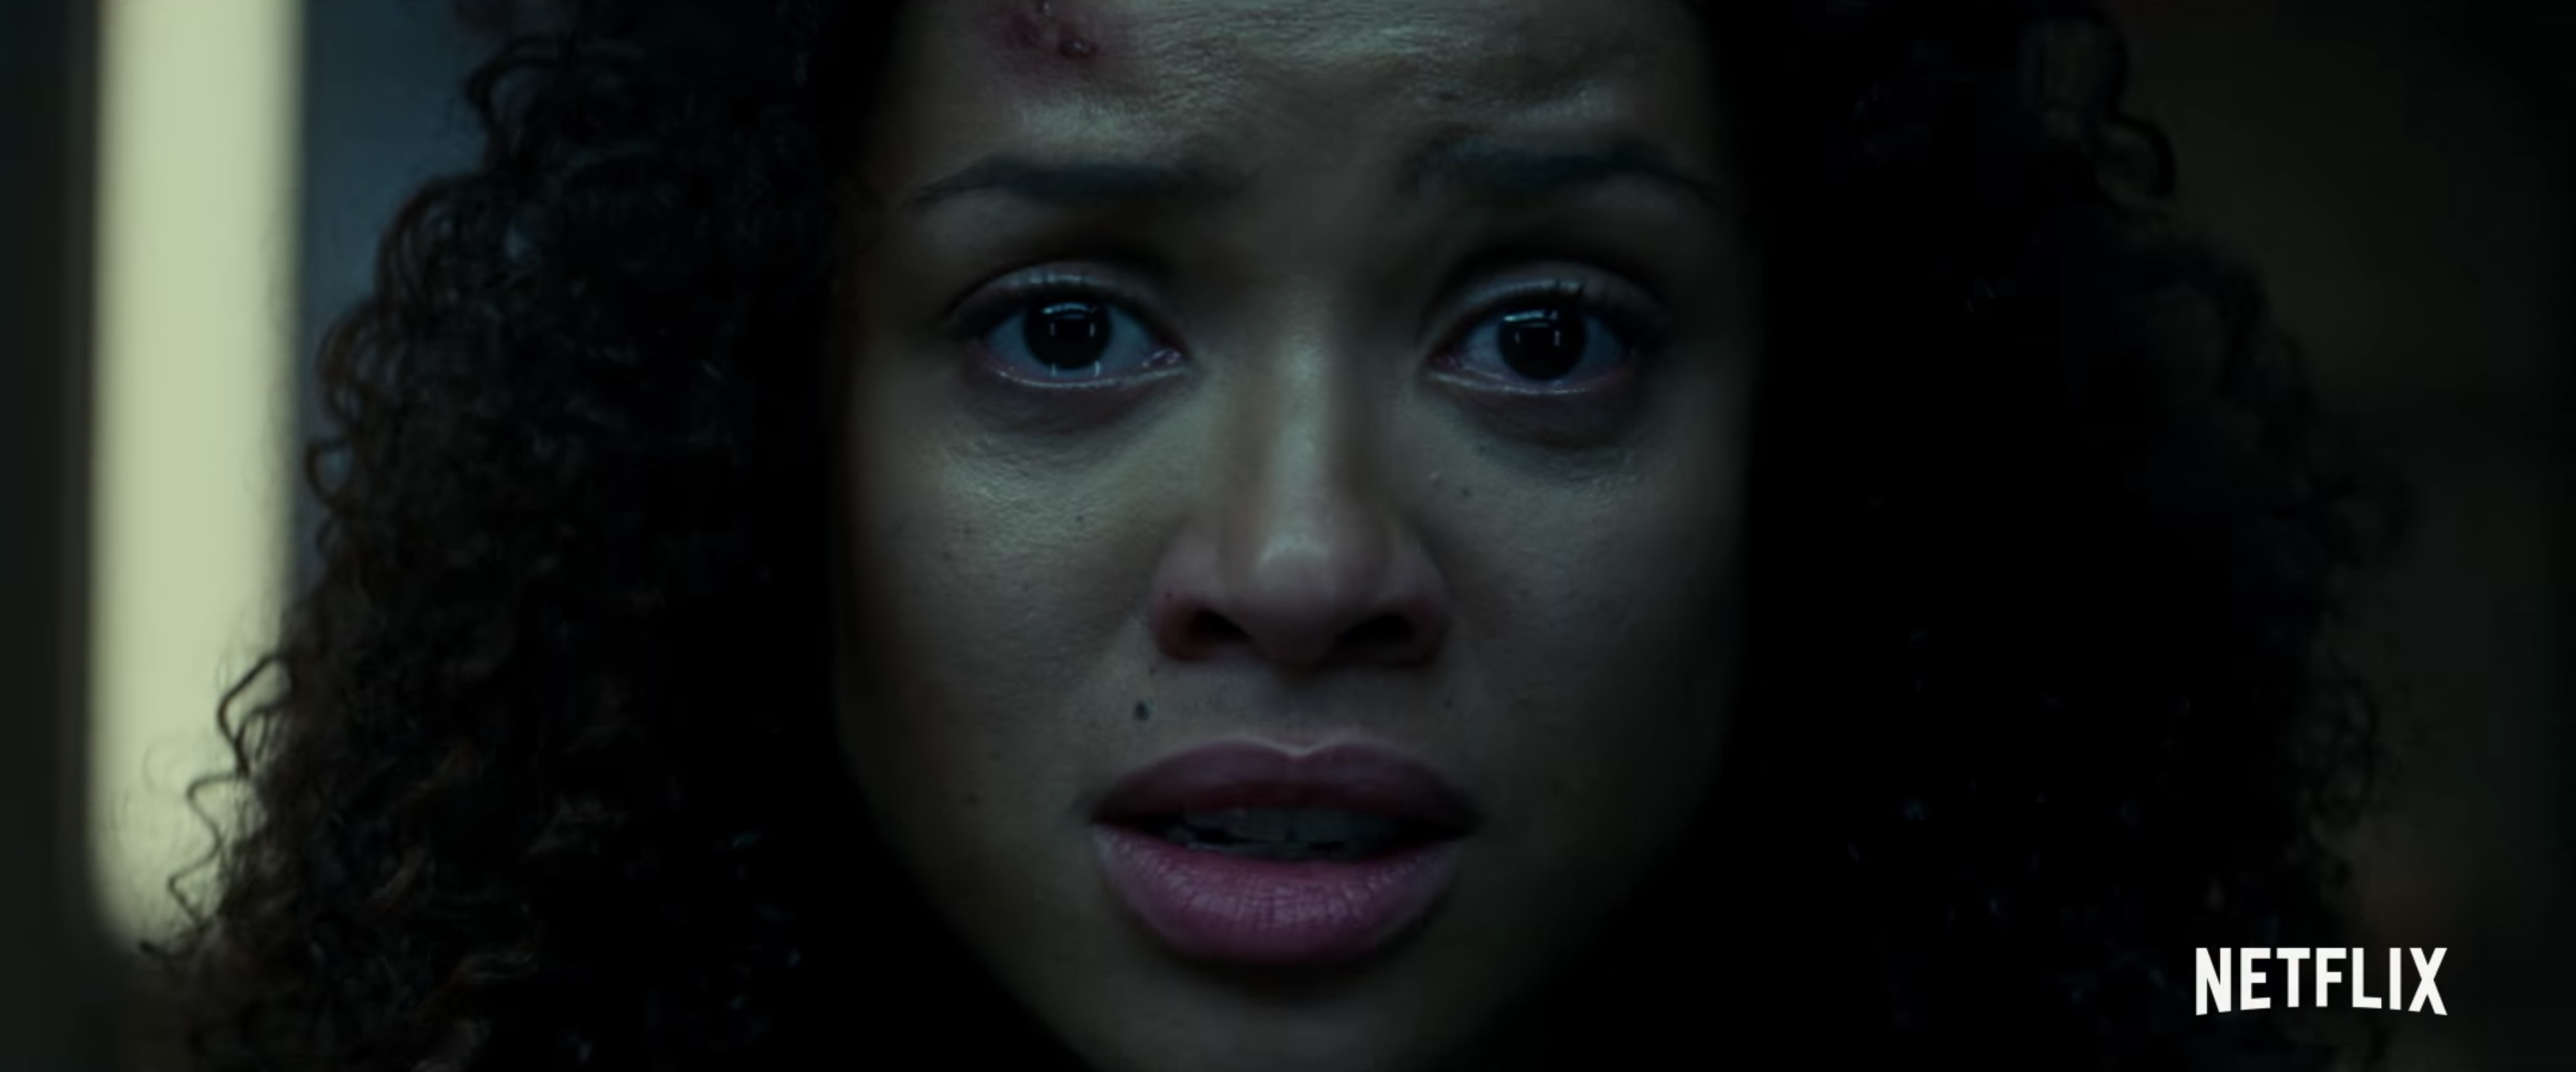 The Cloverfield Paradox Trailer: Time To Open the Mystery